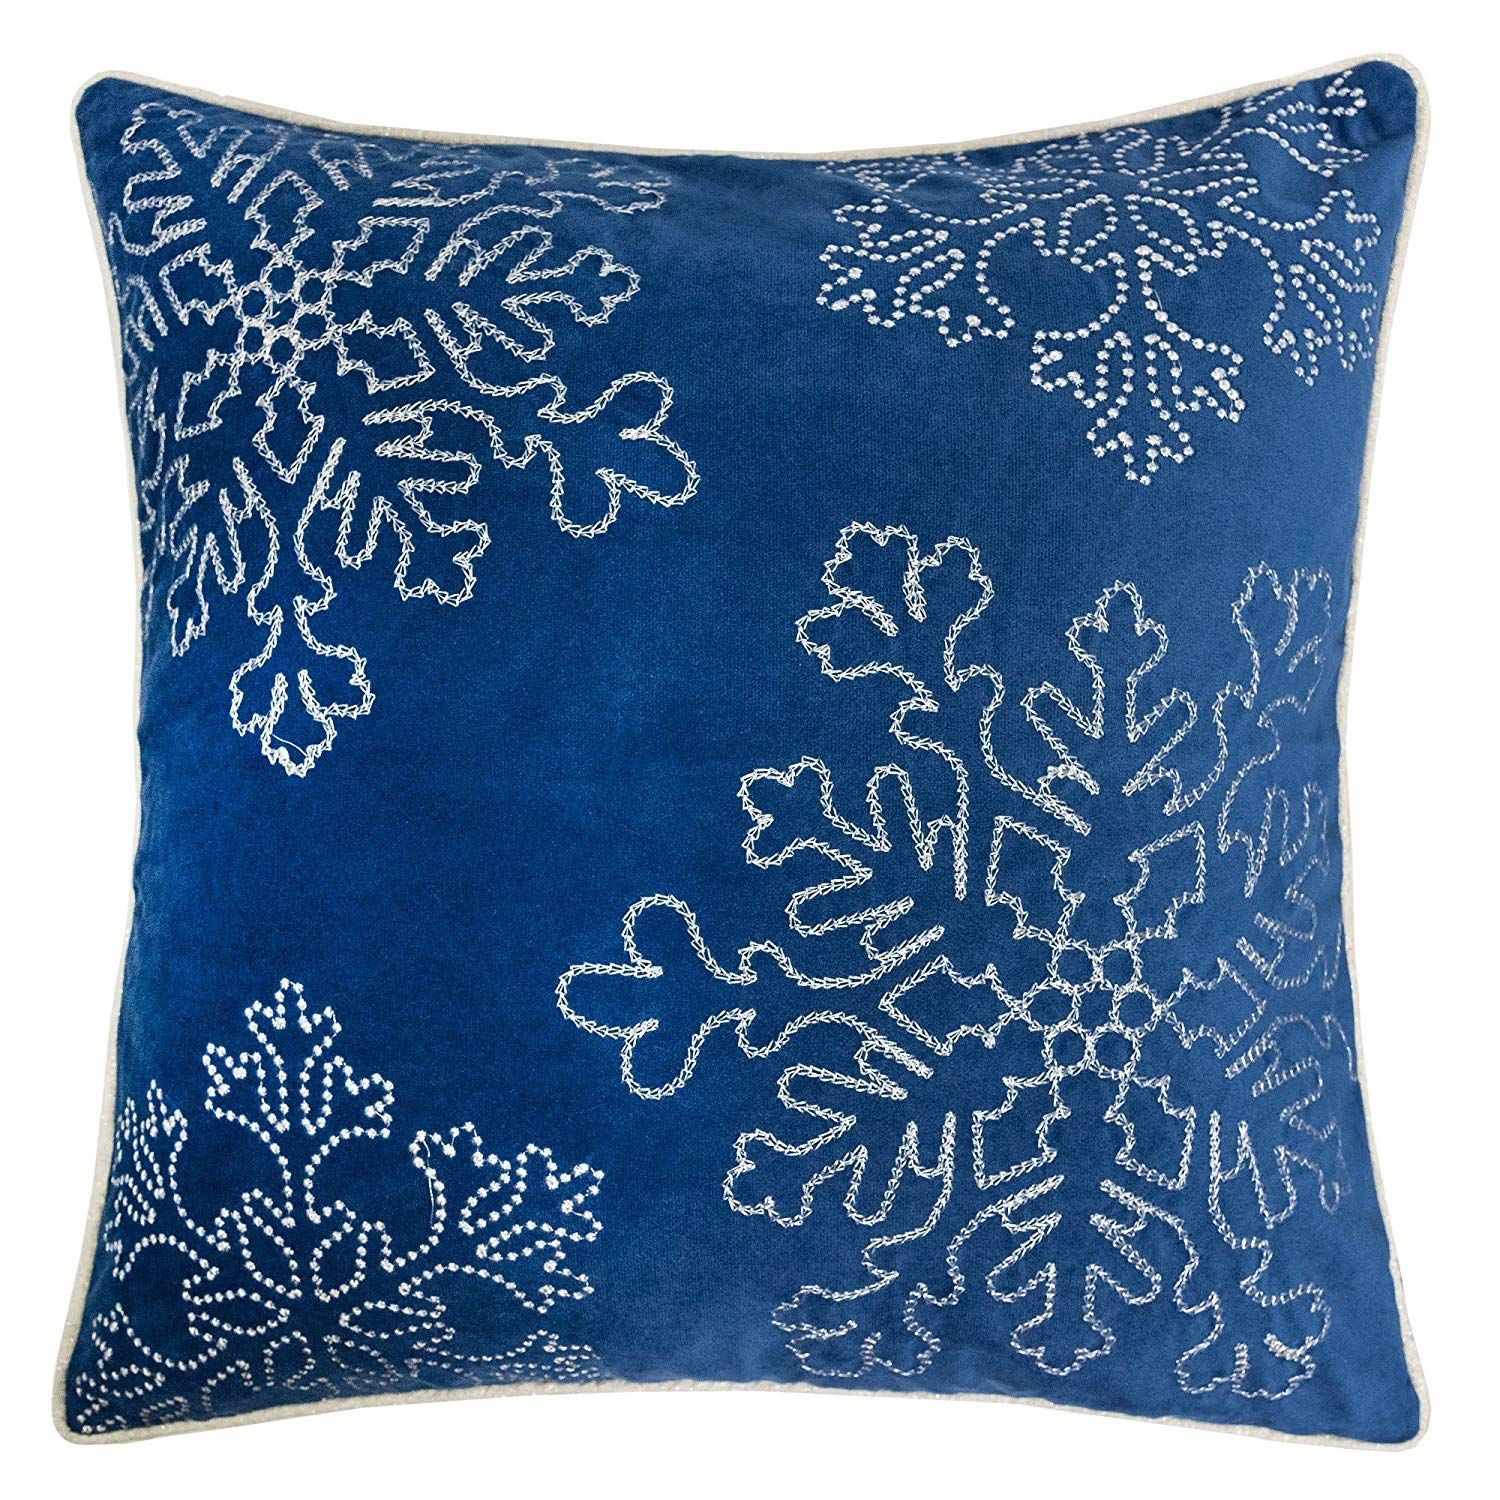 15 Beautiful Blue And White Christmas Pillow Covers Christmas Pillow Covers Throw Pillows Velvet Throw Pillows